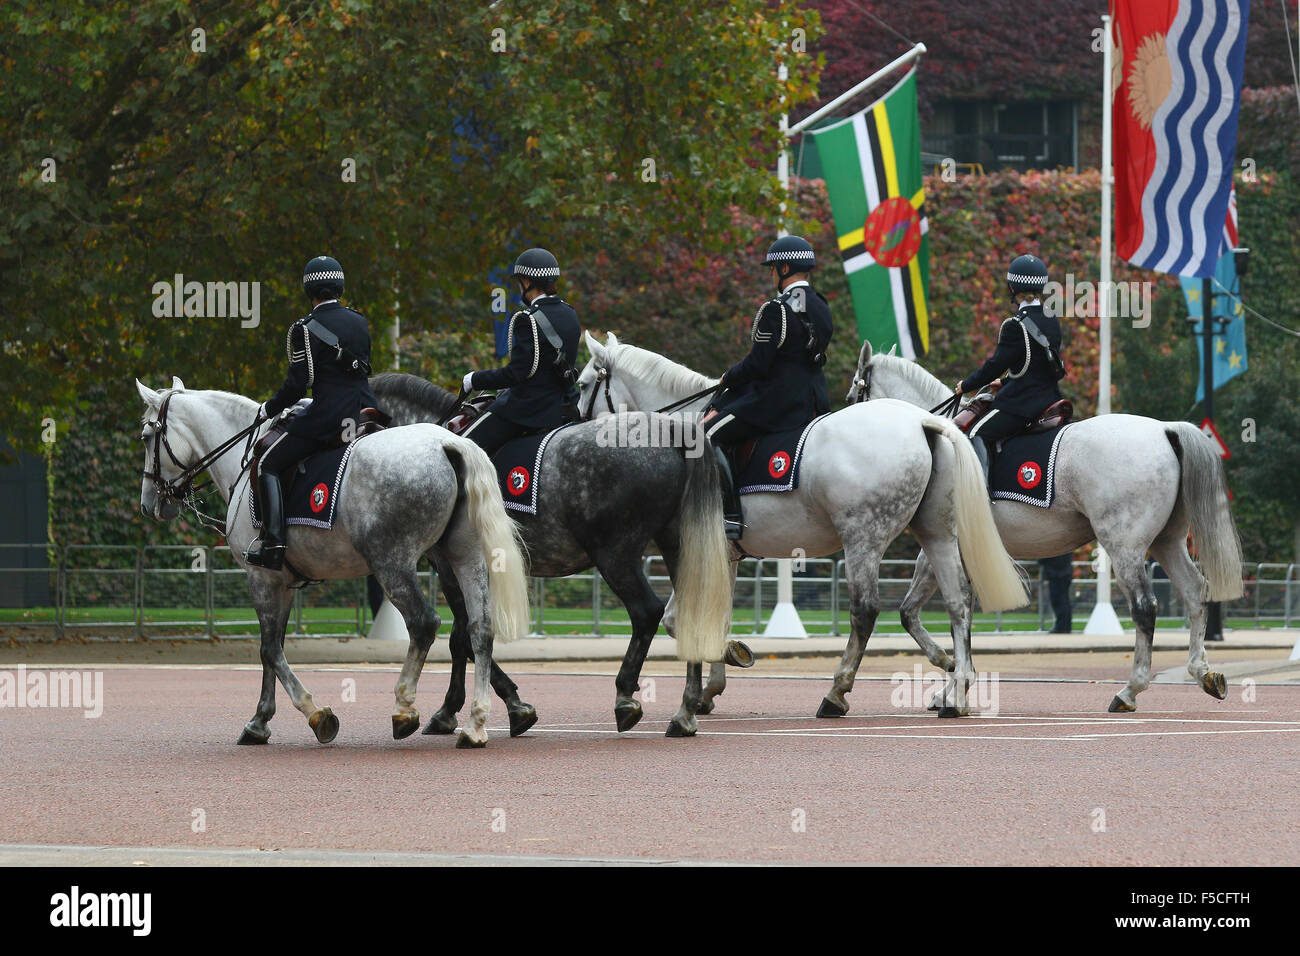 London, UK, 20th Oct 2015: General views from The Mall for the Chinese President Xi Jinping State Visit to London - Stock Image